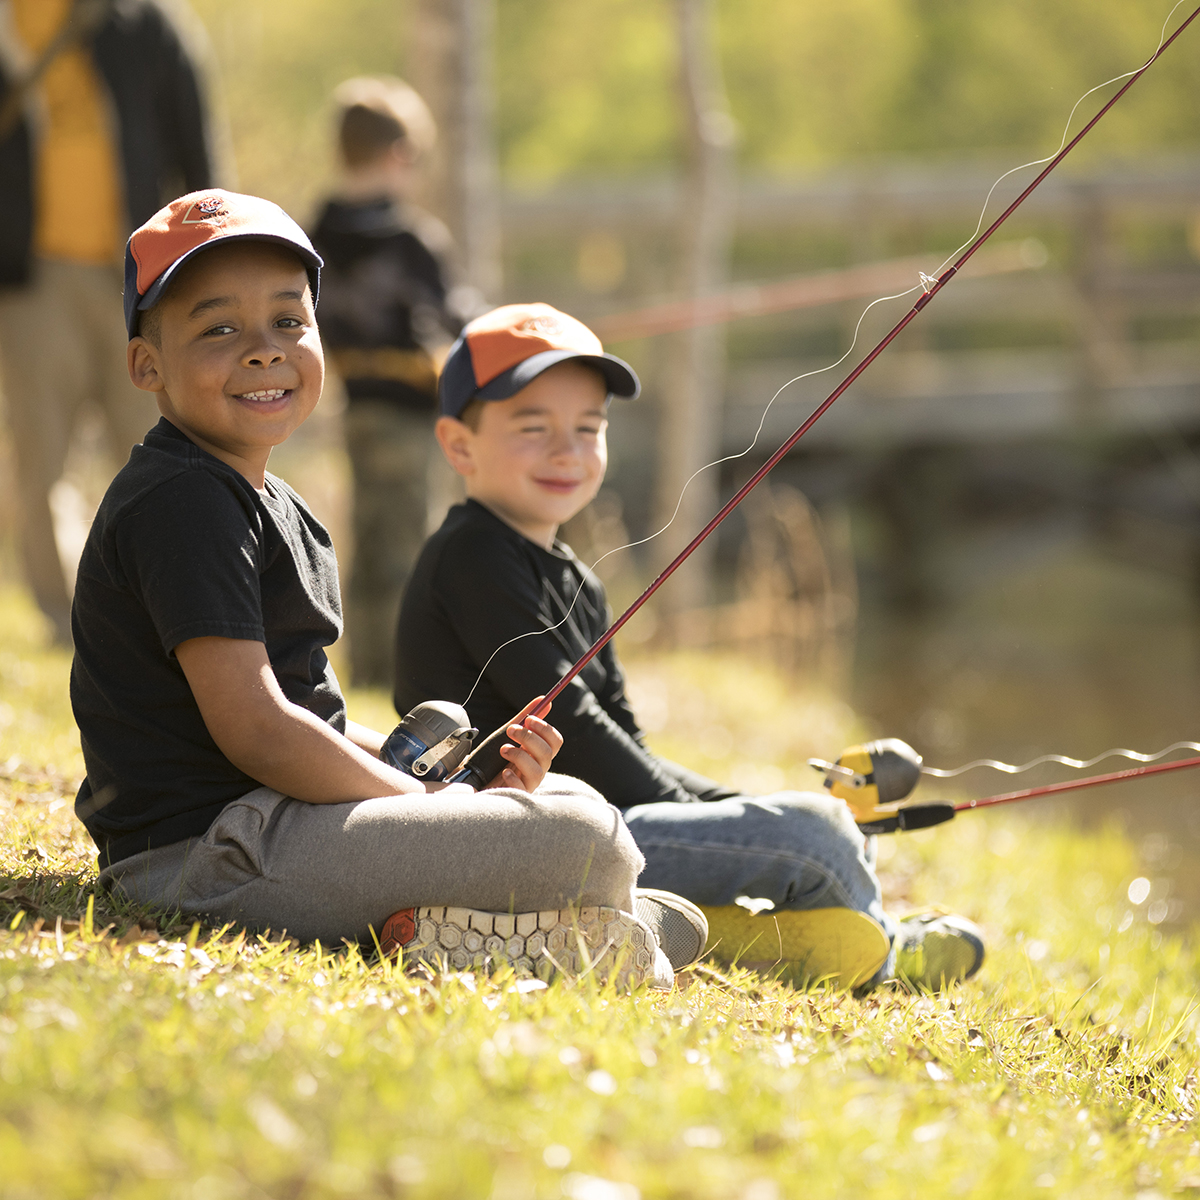 Two Cub Scouts fishing